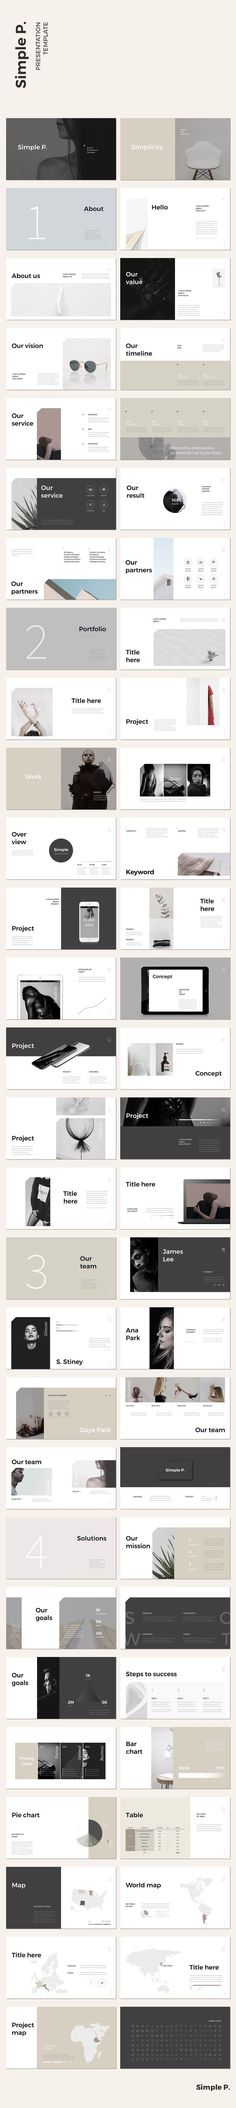 Simple P. PowerPoint Template - Presentations #ppt #powerpoint #template #minimal #chart #portfolio #proposal #mockup #map